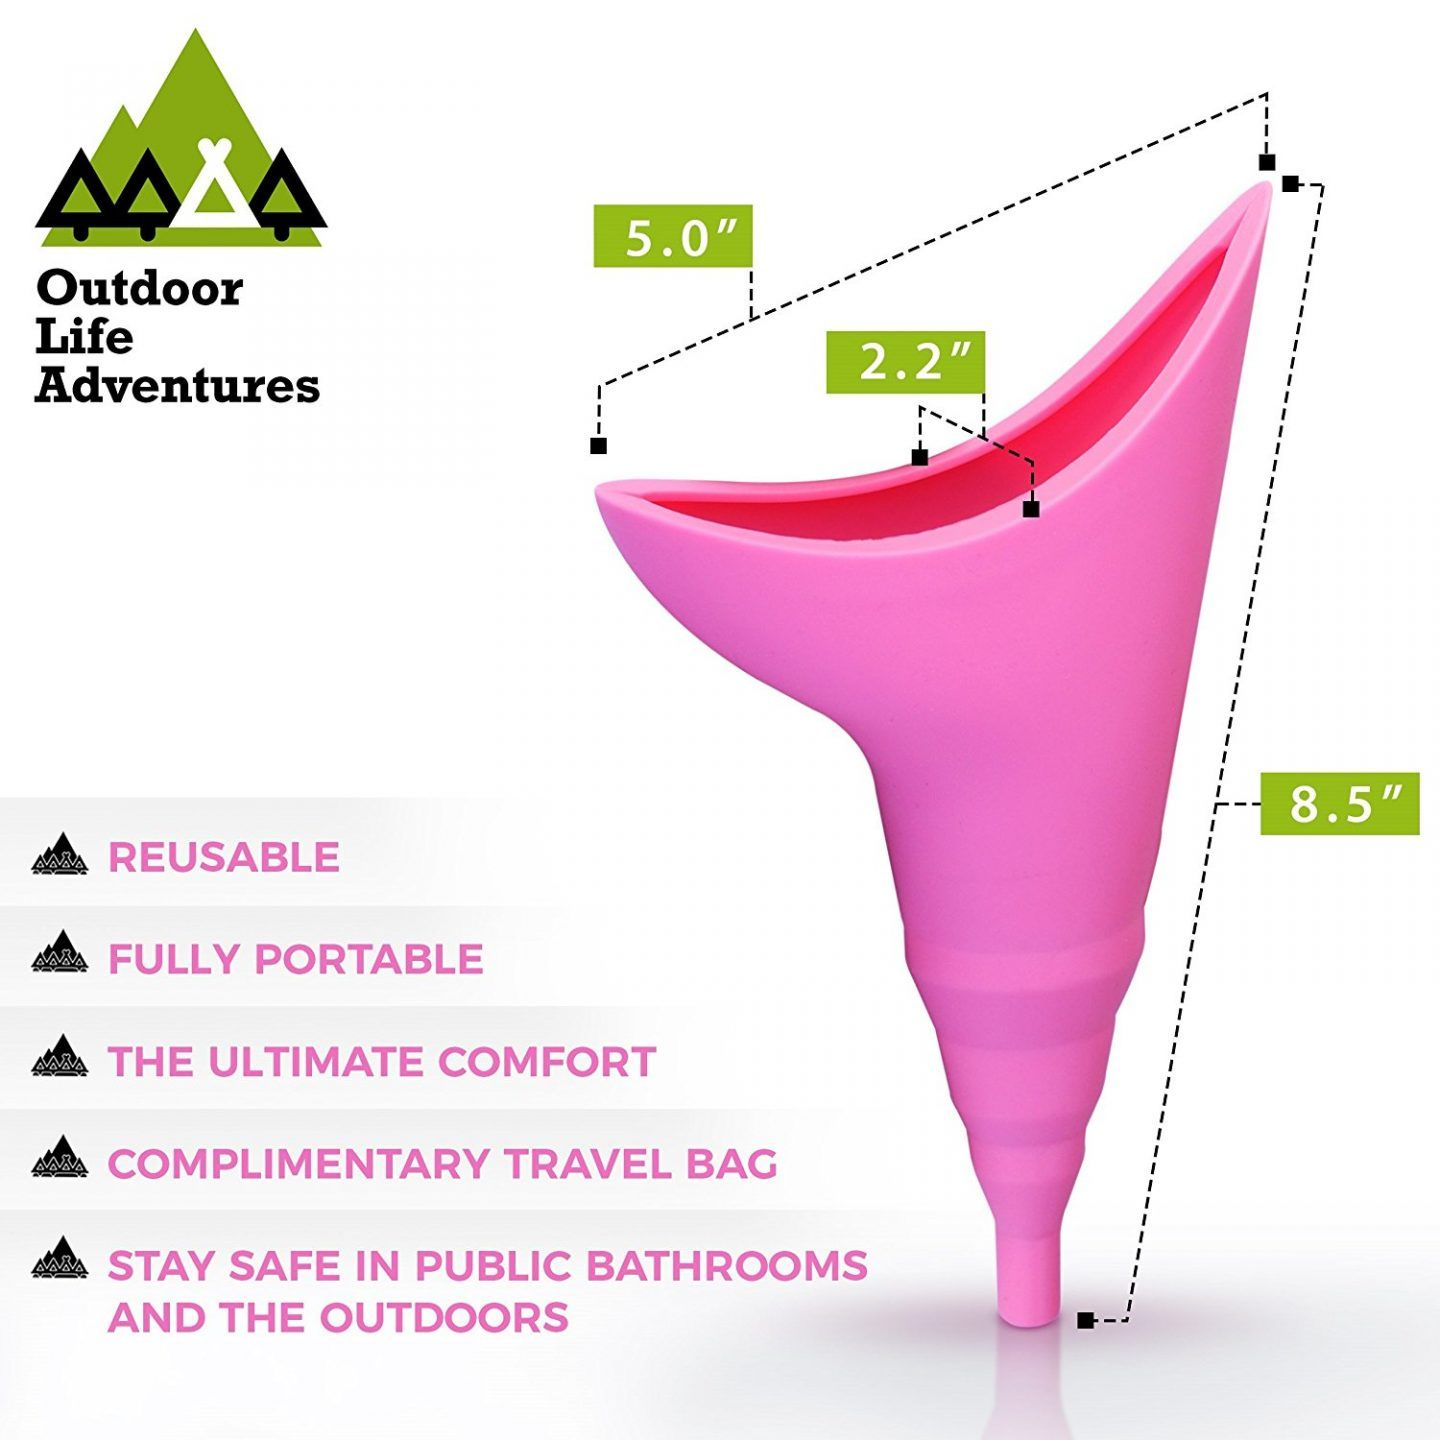 Paper Women Pregnant Urination Device Pee Cup for Outdoor Travel Camping Hiking